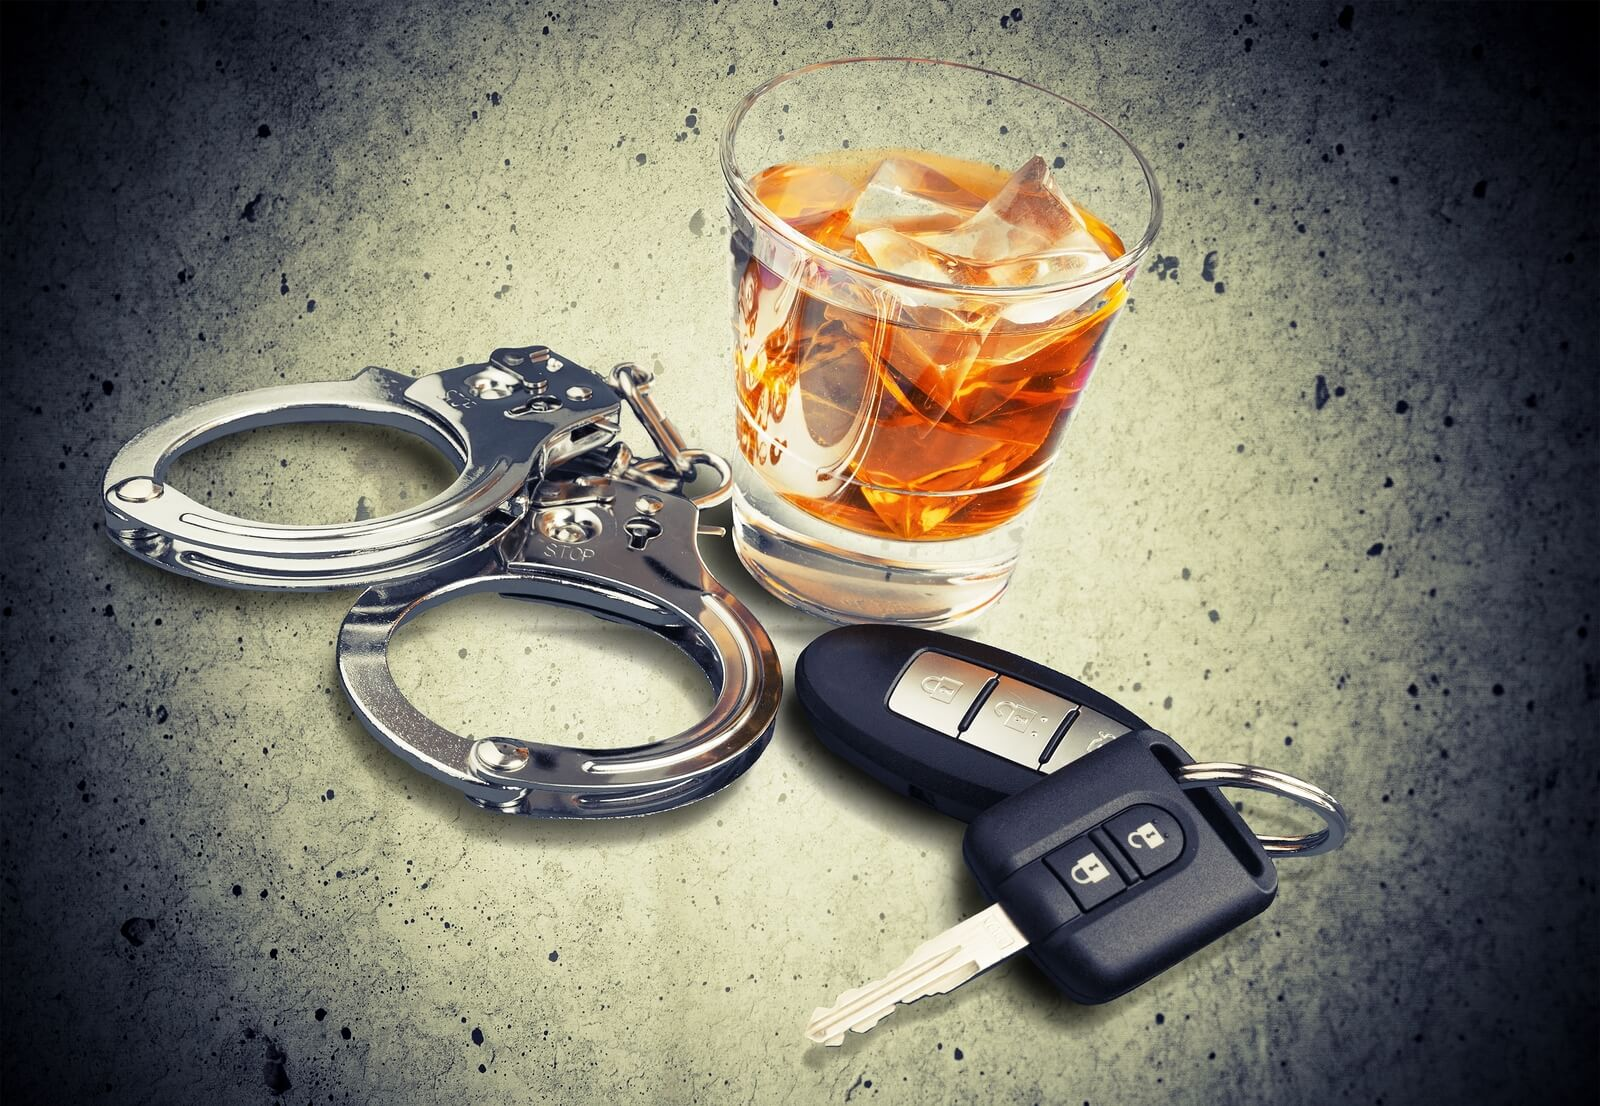 alcohol, keys, and handcuffs on table